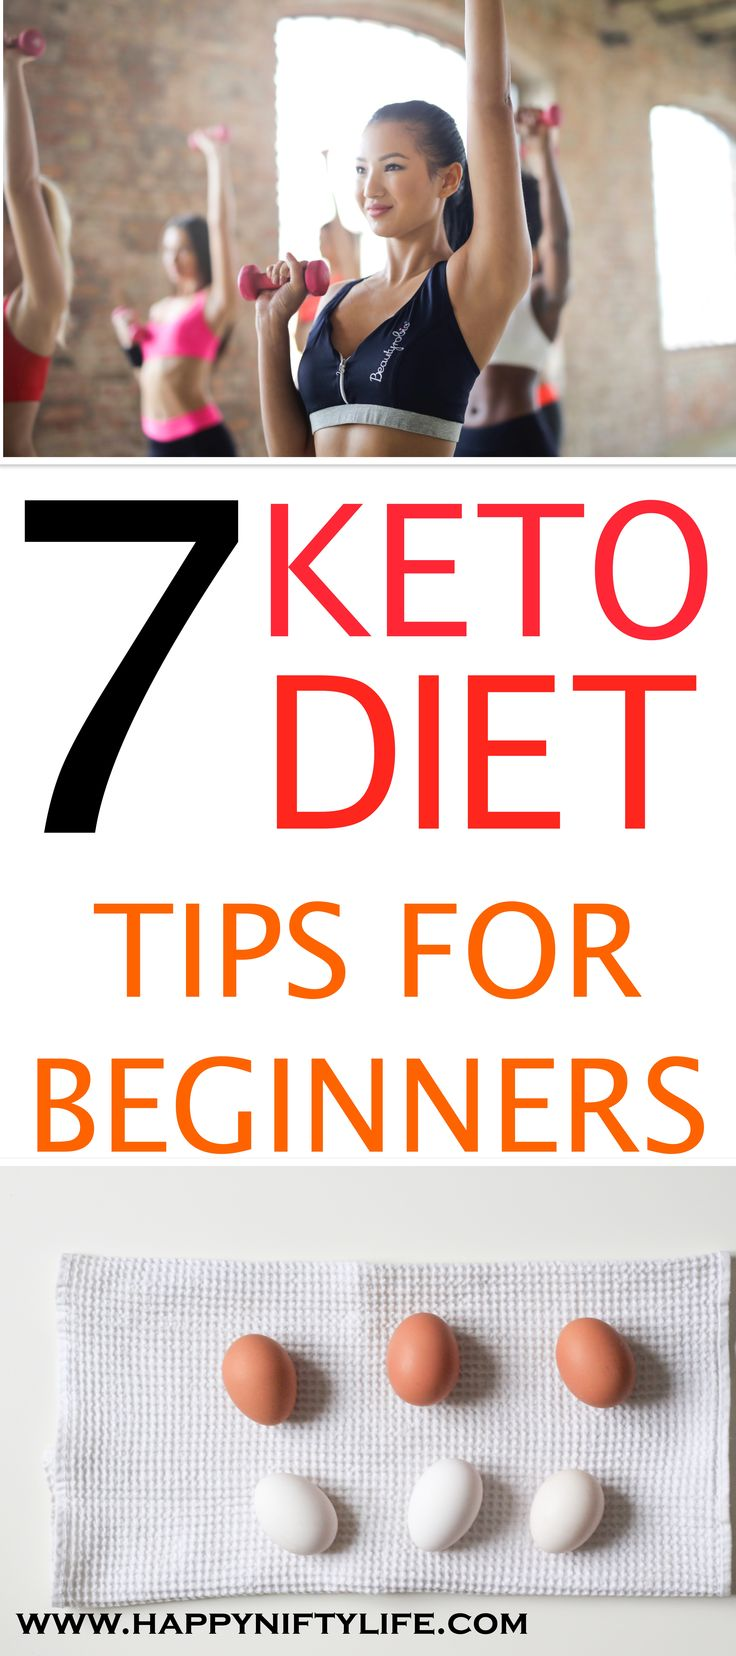 Ketogenic diet tips for beginners. #ketodiet #keto #ketogenicdiet #ketogenic #weightlossdiet #loseweightfast #weightlosstips #healthyeating #fitness